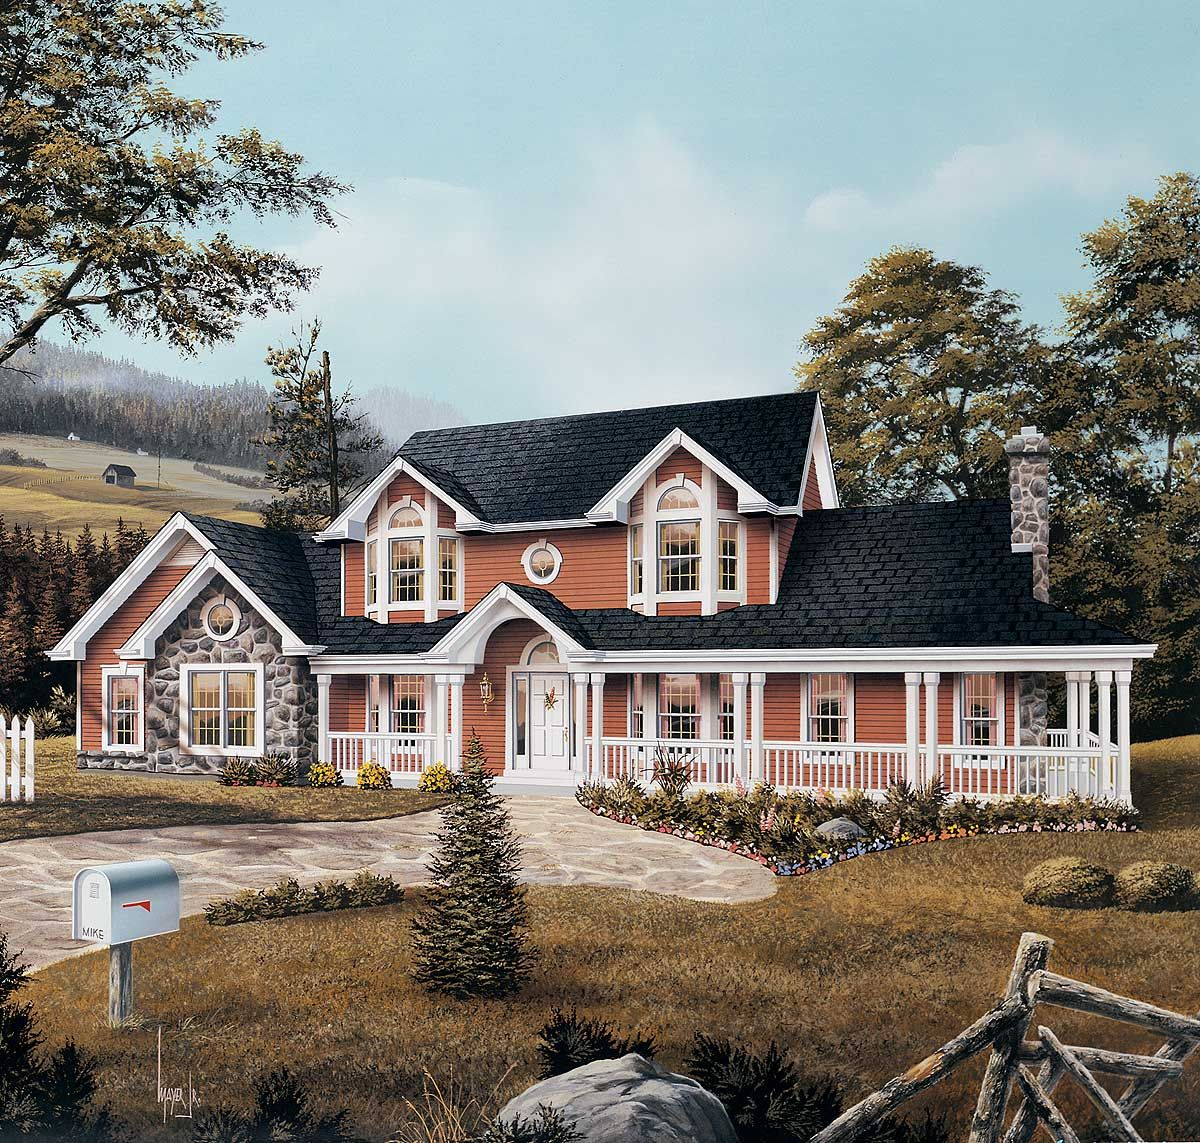 5 bedroom farmhouse plans with wrap around porch